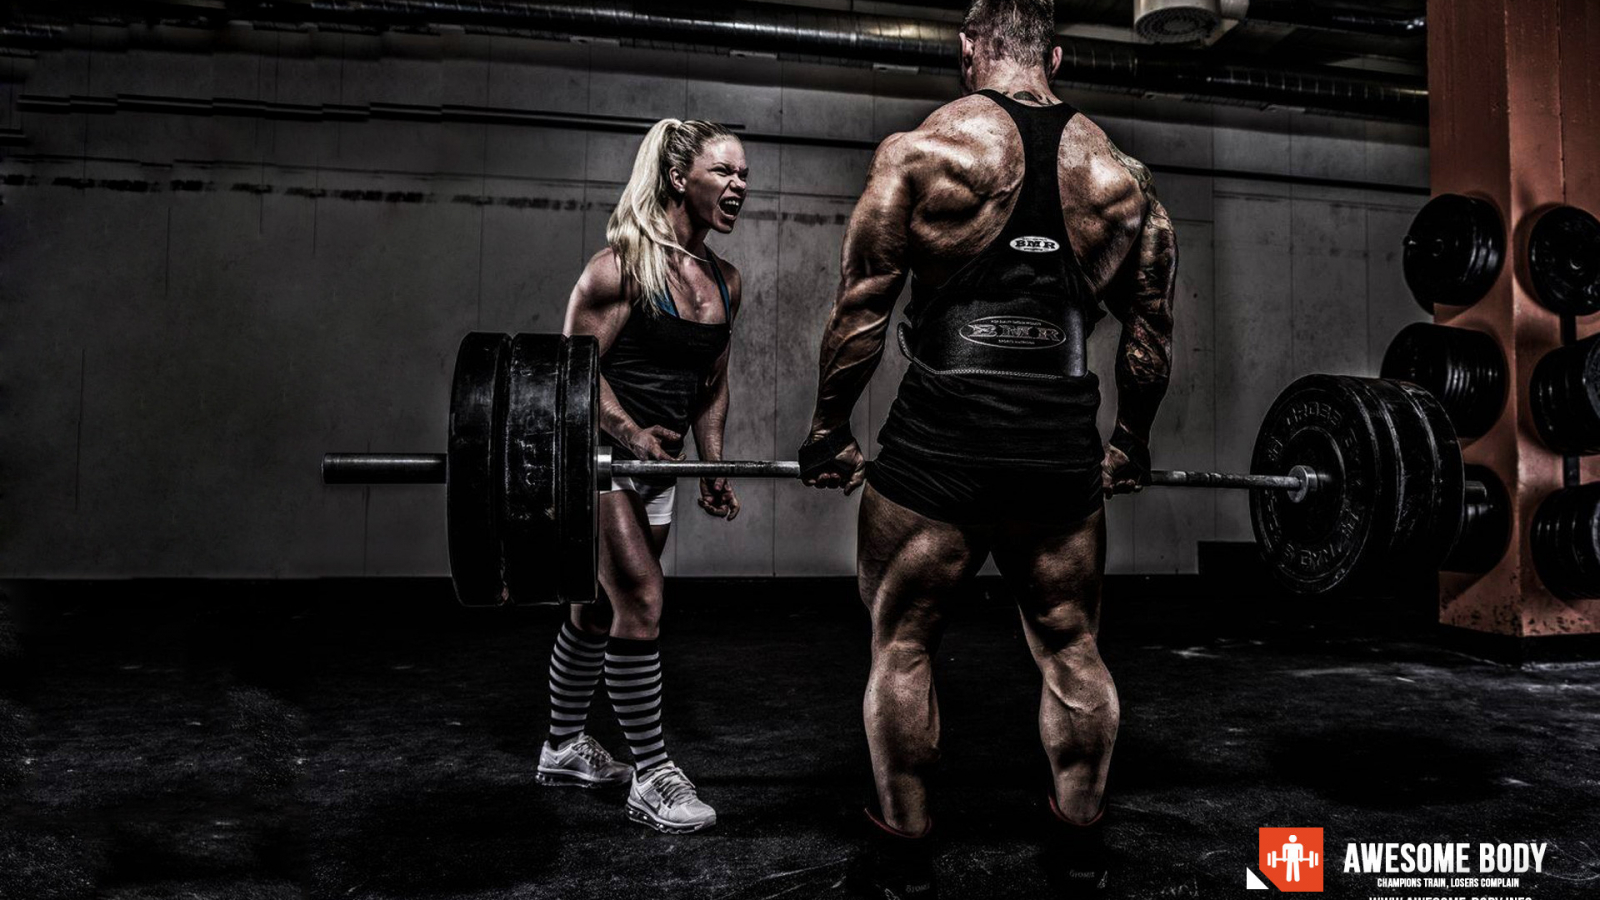 Free Download Dead Lift Wallpaper Best Hd Bodybuilding Wallpapers 1920x1200 For Your Desktop Mobile Tablet Explore 50 Bodybuilding Motivational Wallpapers Body Wallpaper Bodybuilding Wallpaper Motivational Posters Fitness Screensavers And